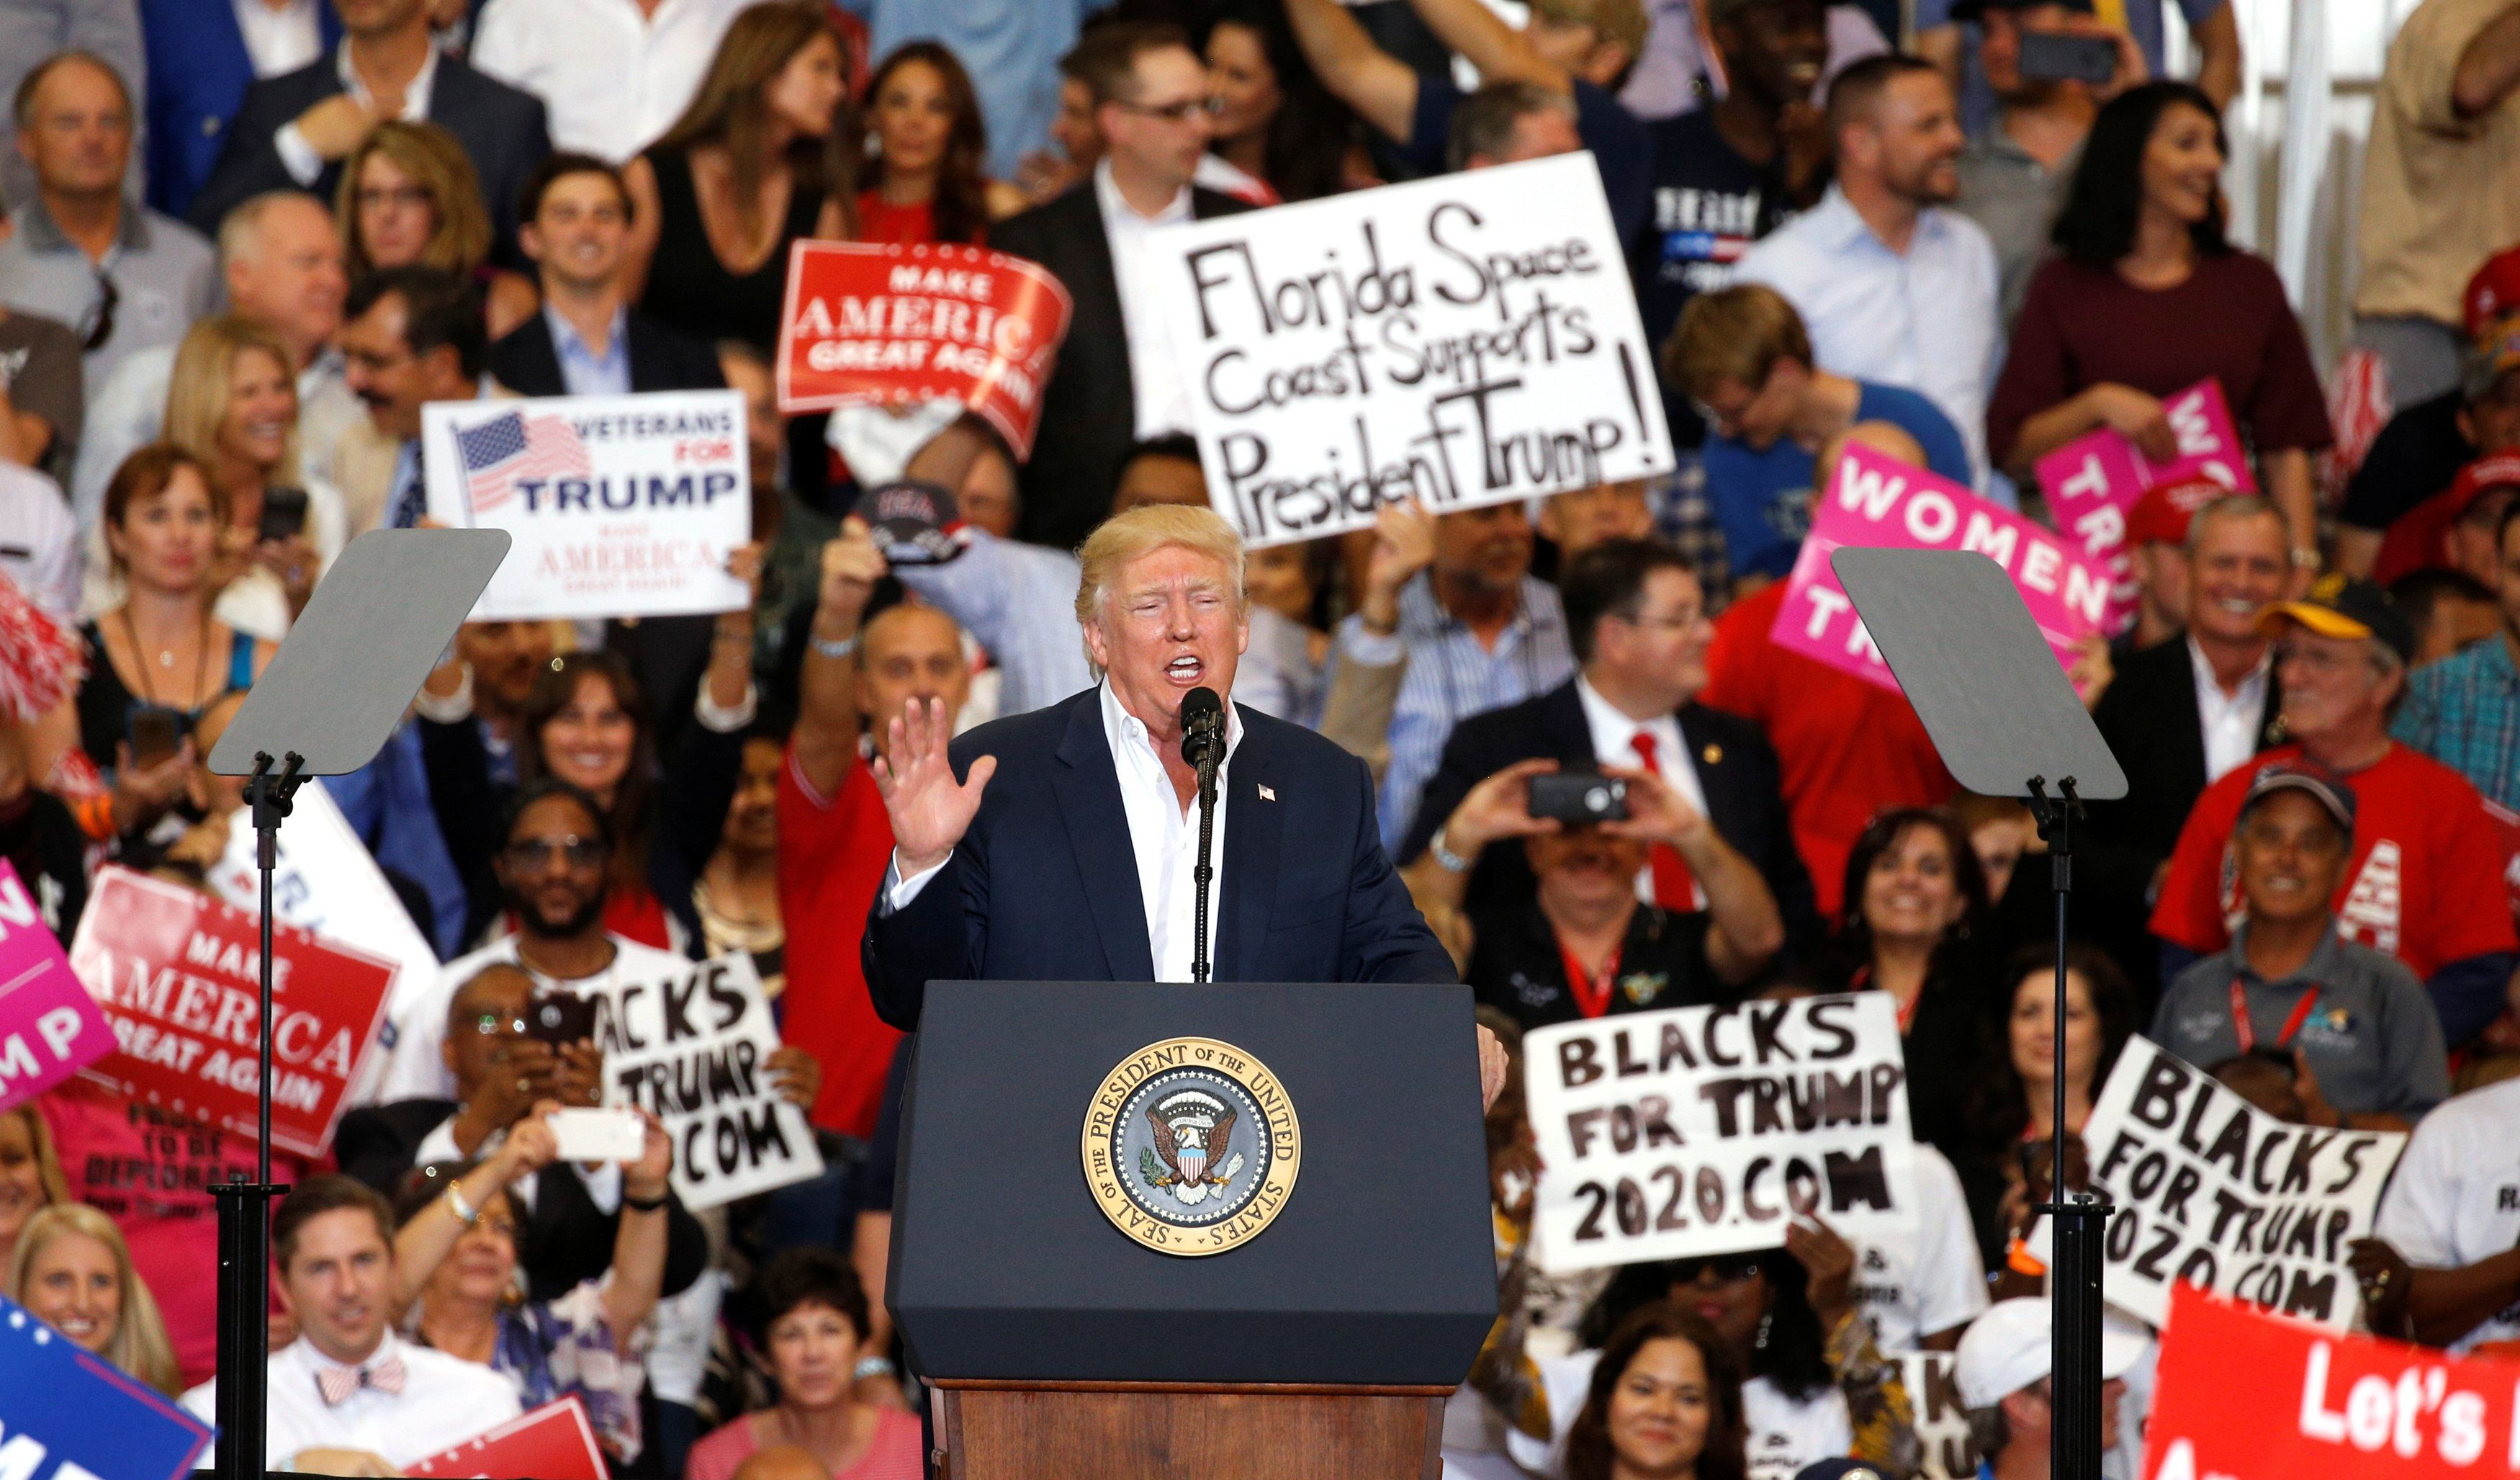 The Swedish Embassy in the US has said it looks forward to informing Donald Trump about the country's...